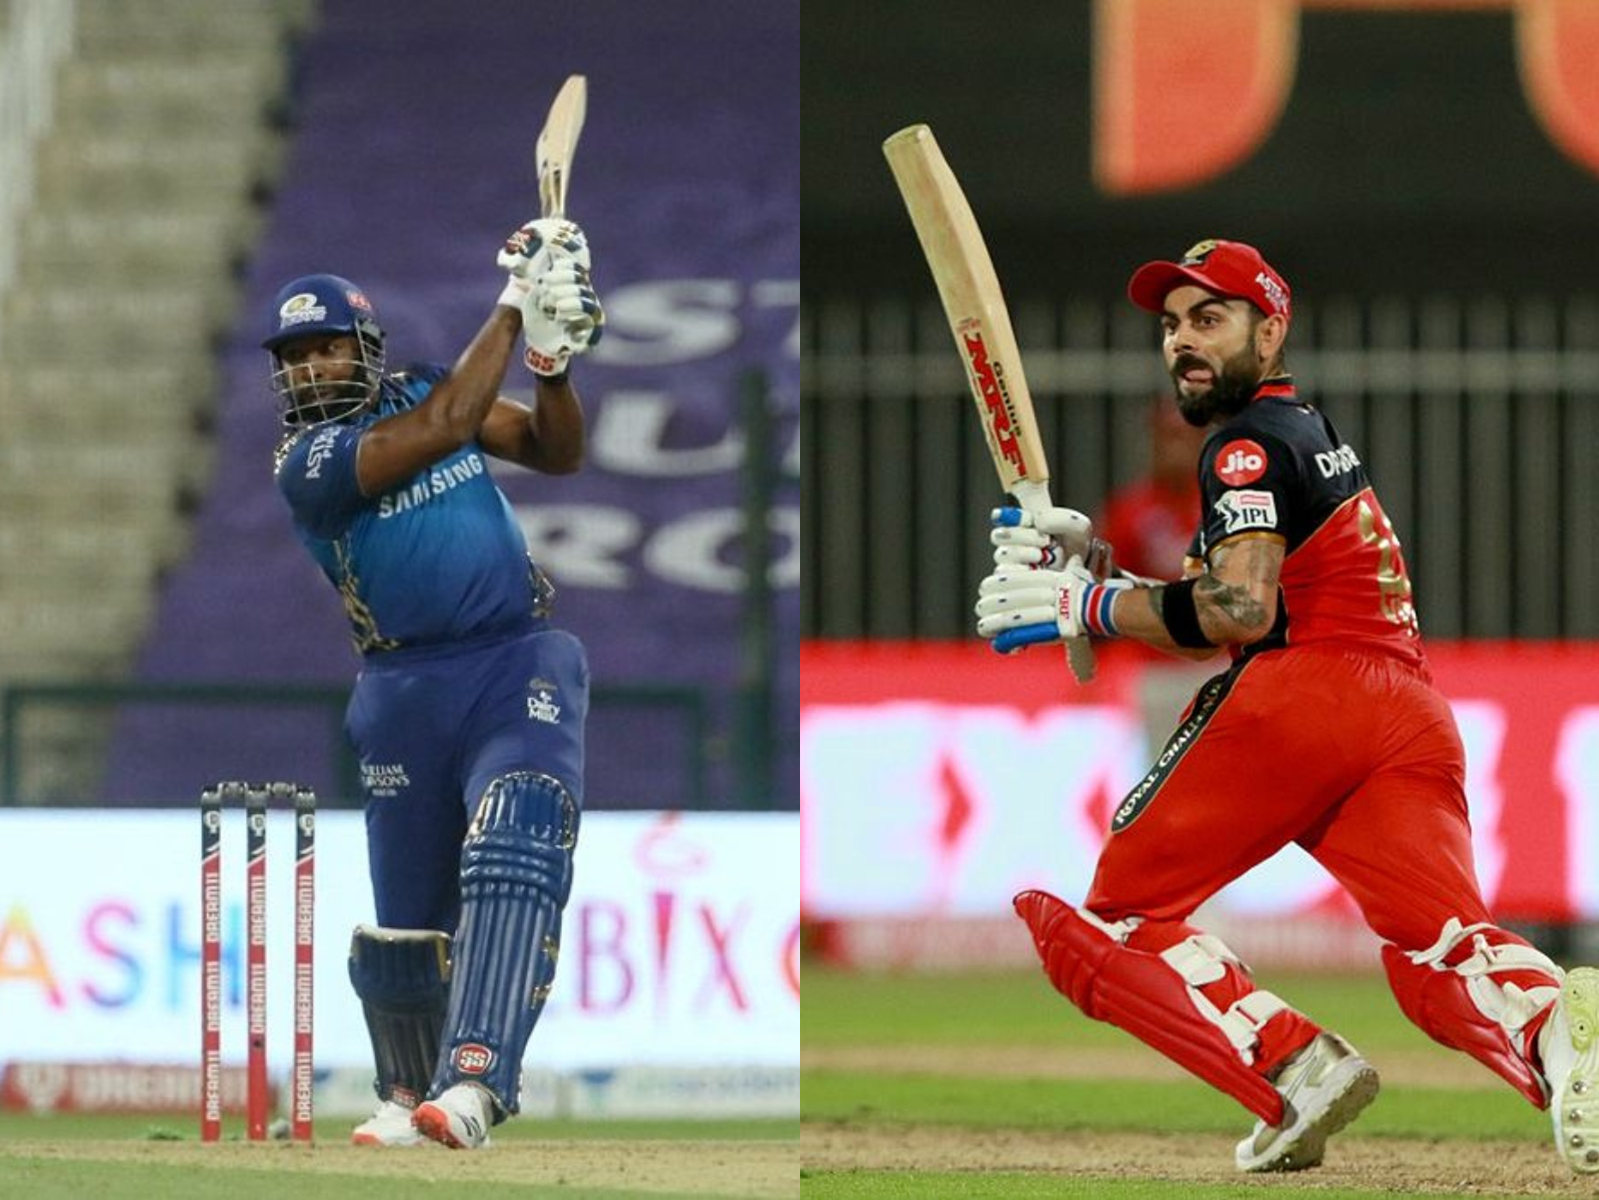 Fantasy Tips for Match 48 between MI and RCB of IPL 2020 | BCCI/IPL